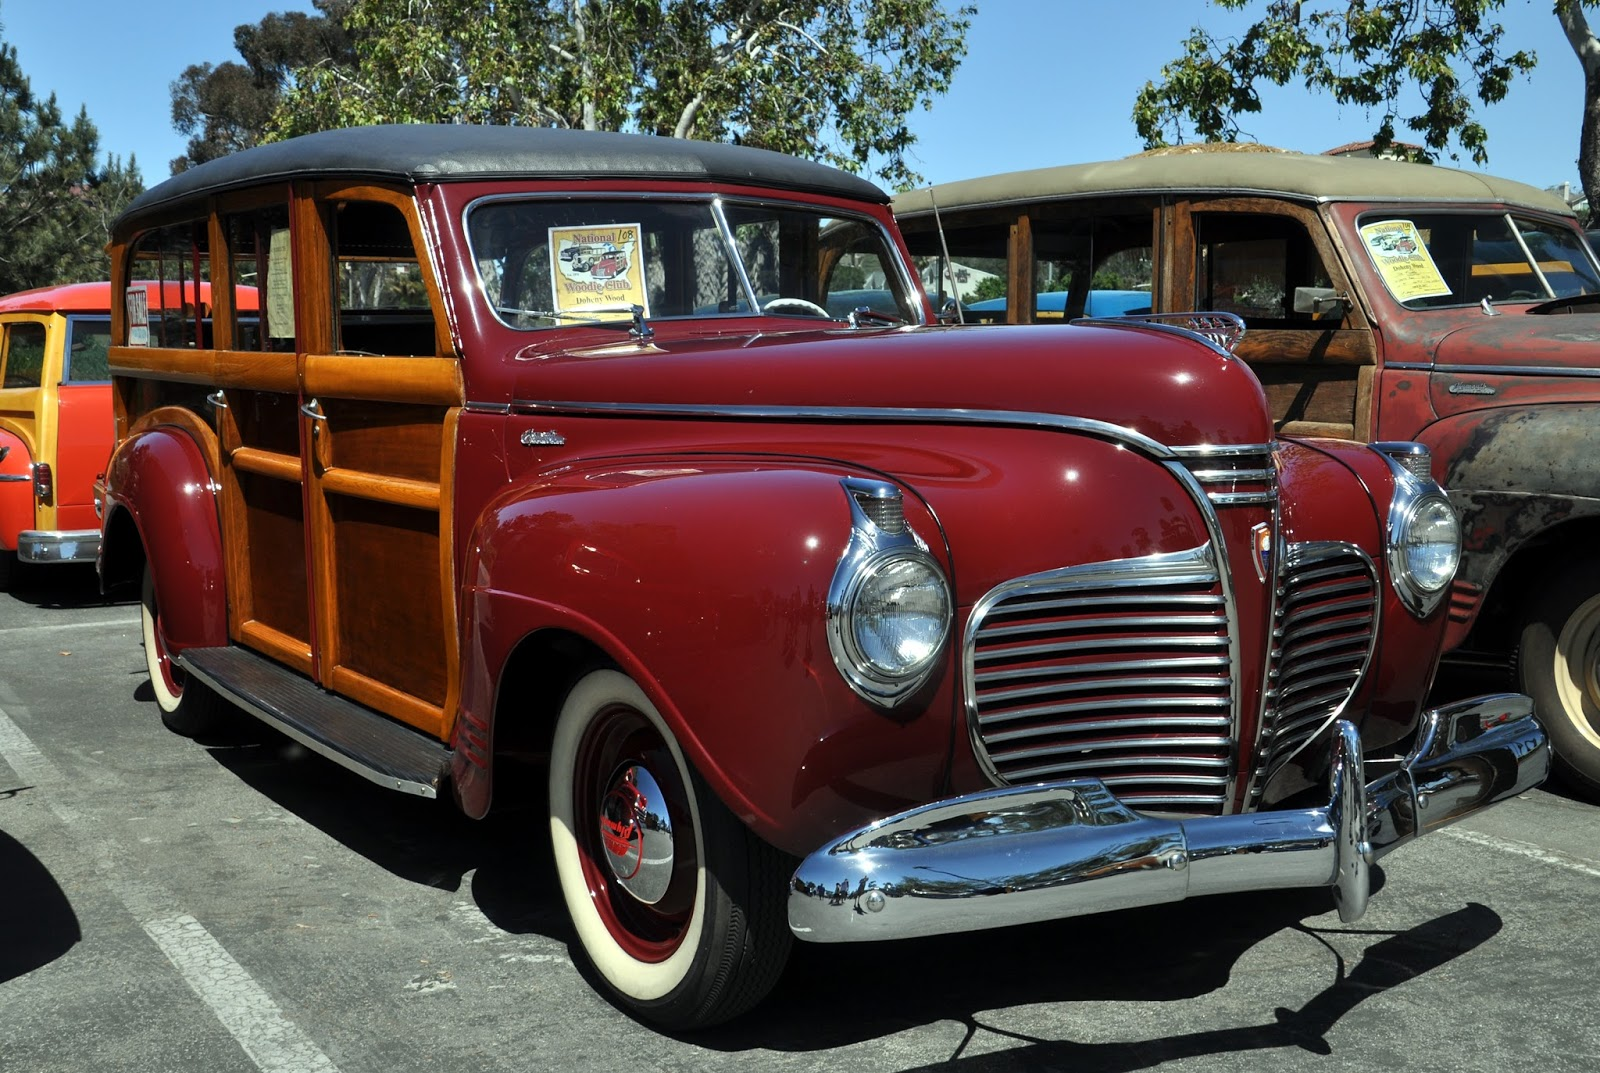 Just A Car Guy 1941 Plymouth Woodies Rough And Restored Compared Pro Street The Back Of Ones Is Full Seats There Was No Point In Photographing Them